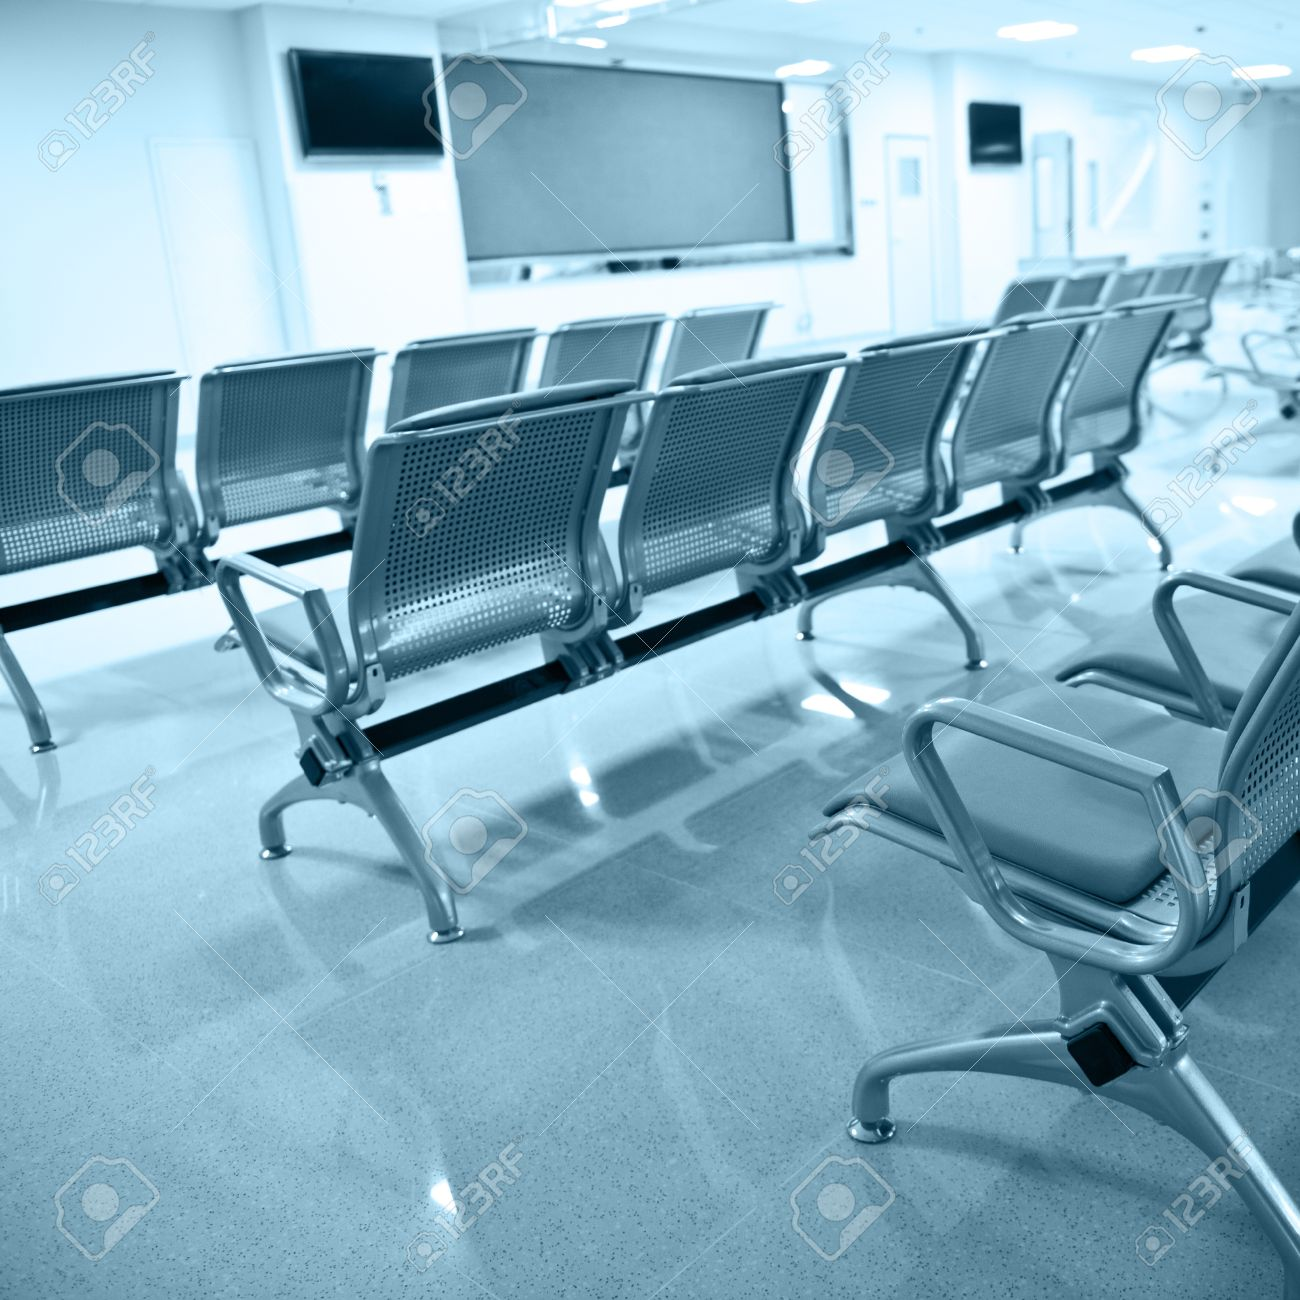 Empty chair in room - Hospital Waiting Room With Empty Chairs Stock Photo 17828283